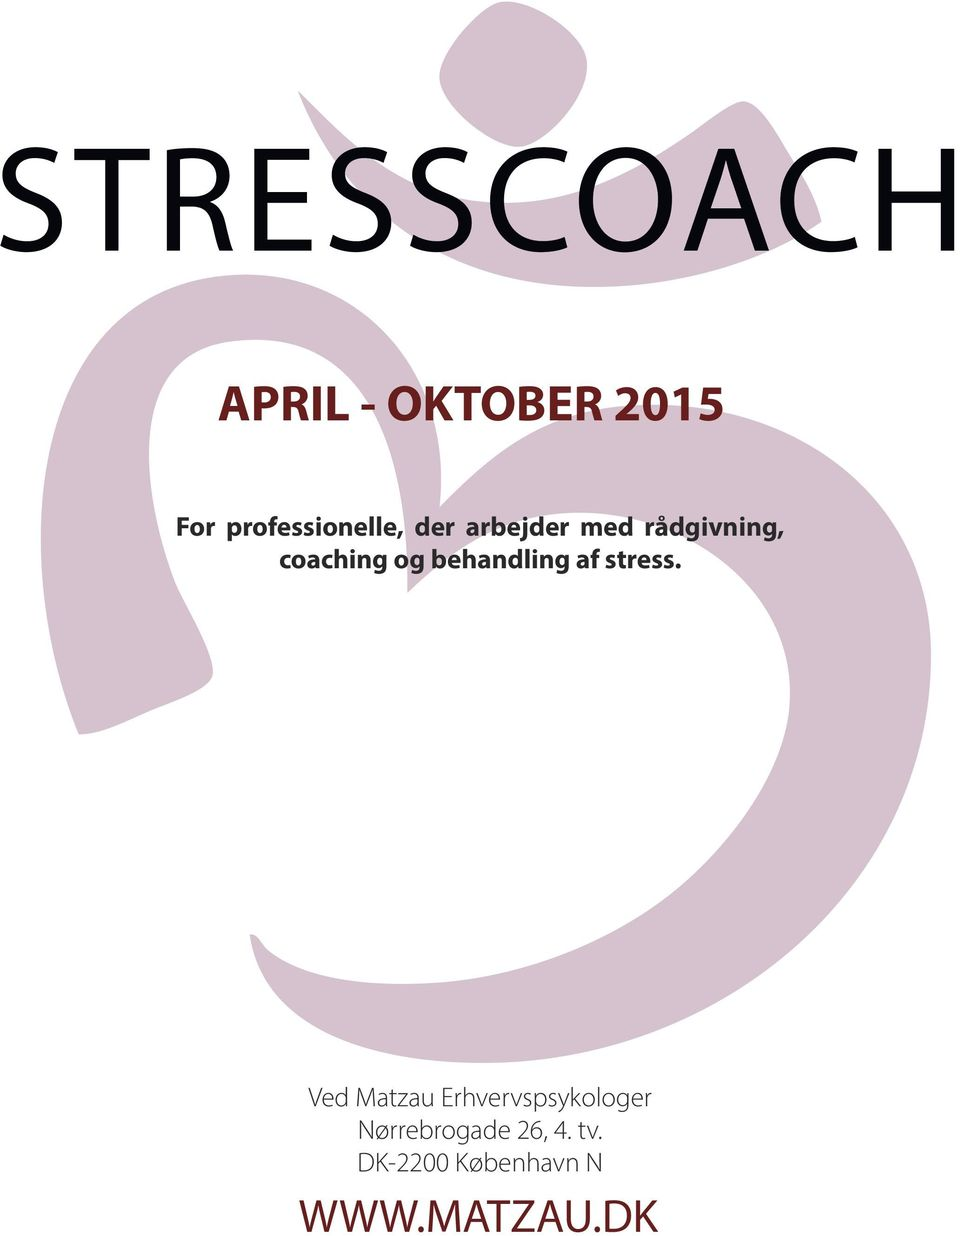 coaching og behandling af stress.